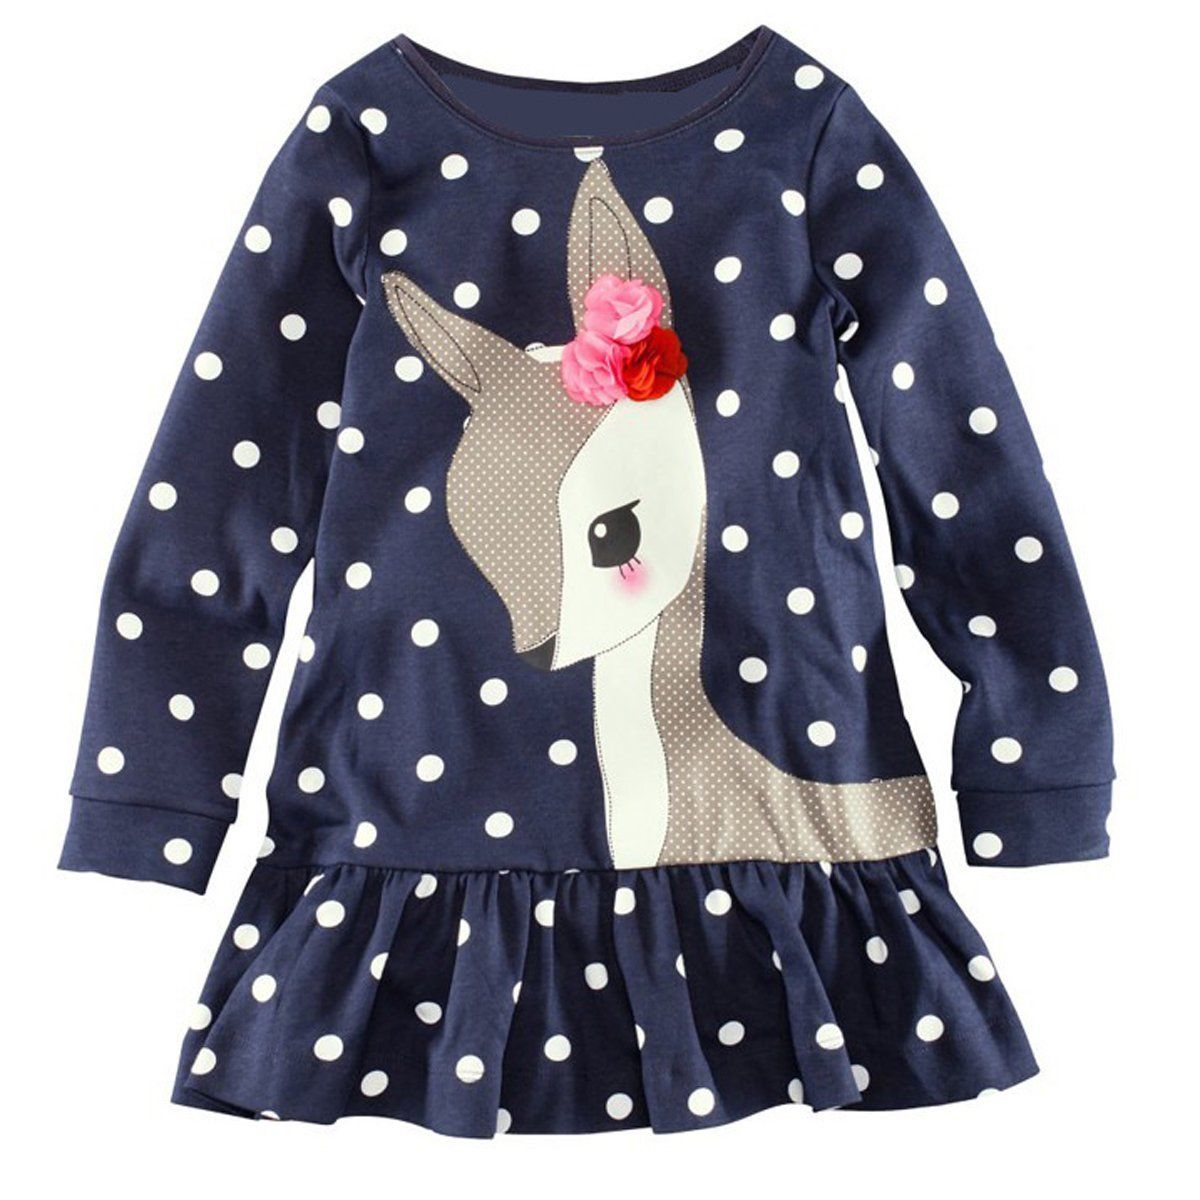 Toddler Baby Girls Kids Autumn Clothes Long Sleeve Party Deer Tops T Shirt Dress Polka Dot Long Sleeve Mini Dresses 2-7 запасная часть щетка графитовая makita cb 132 191972 1